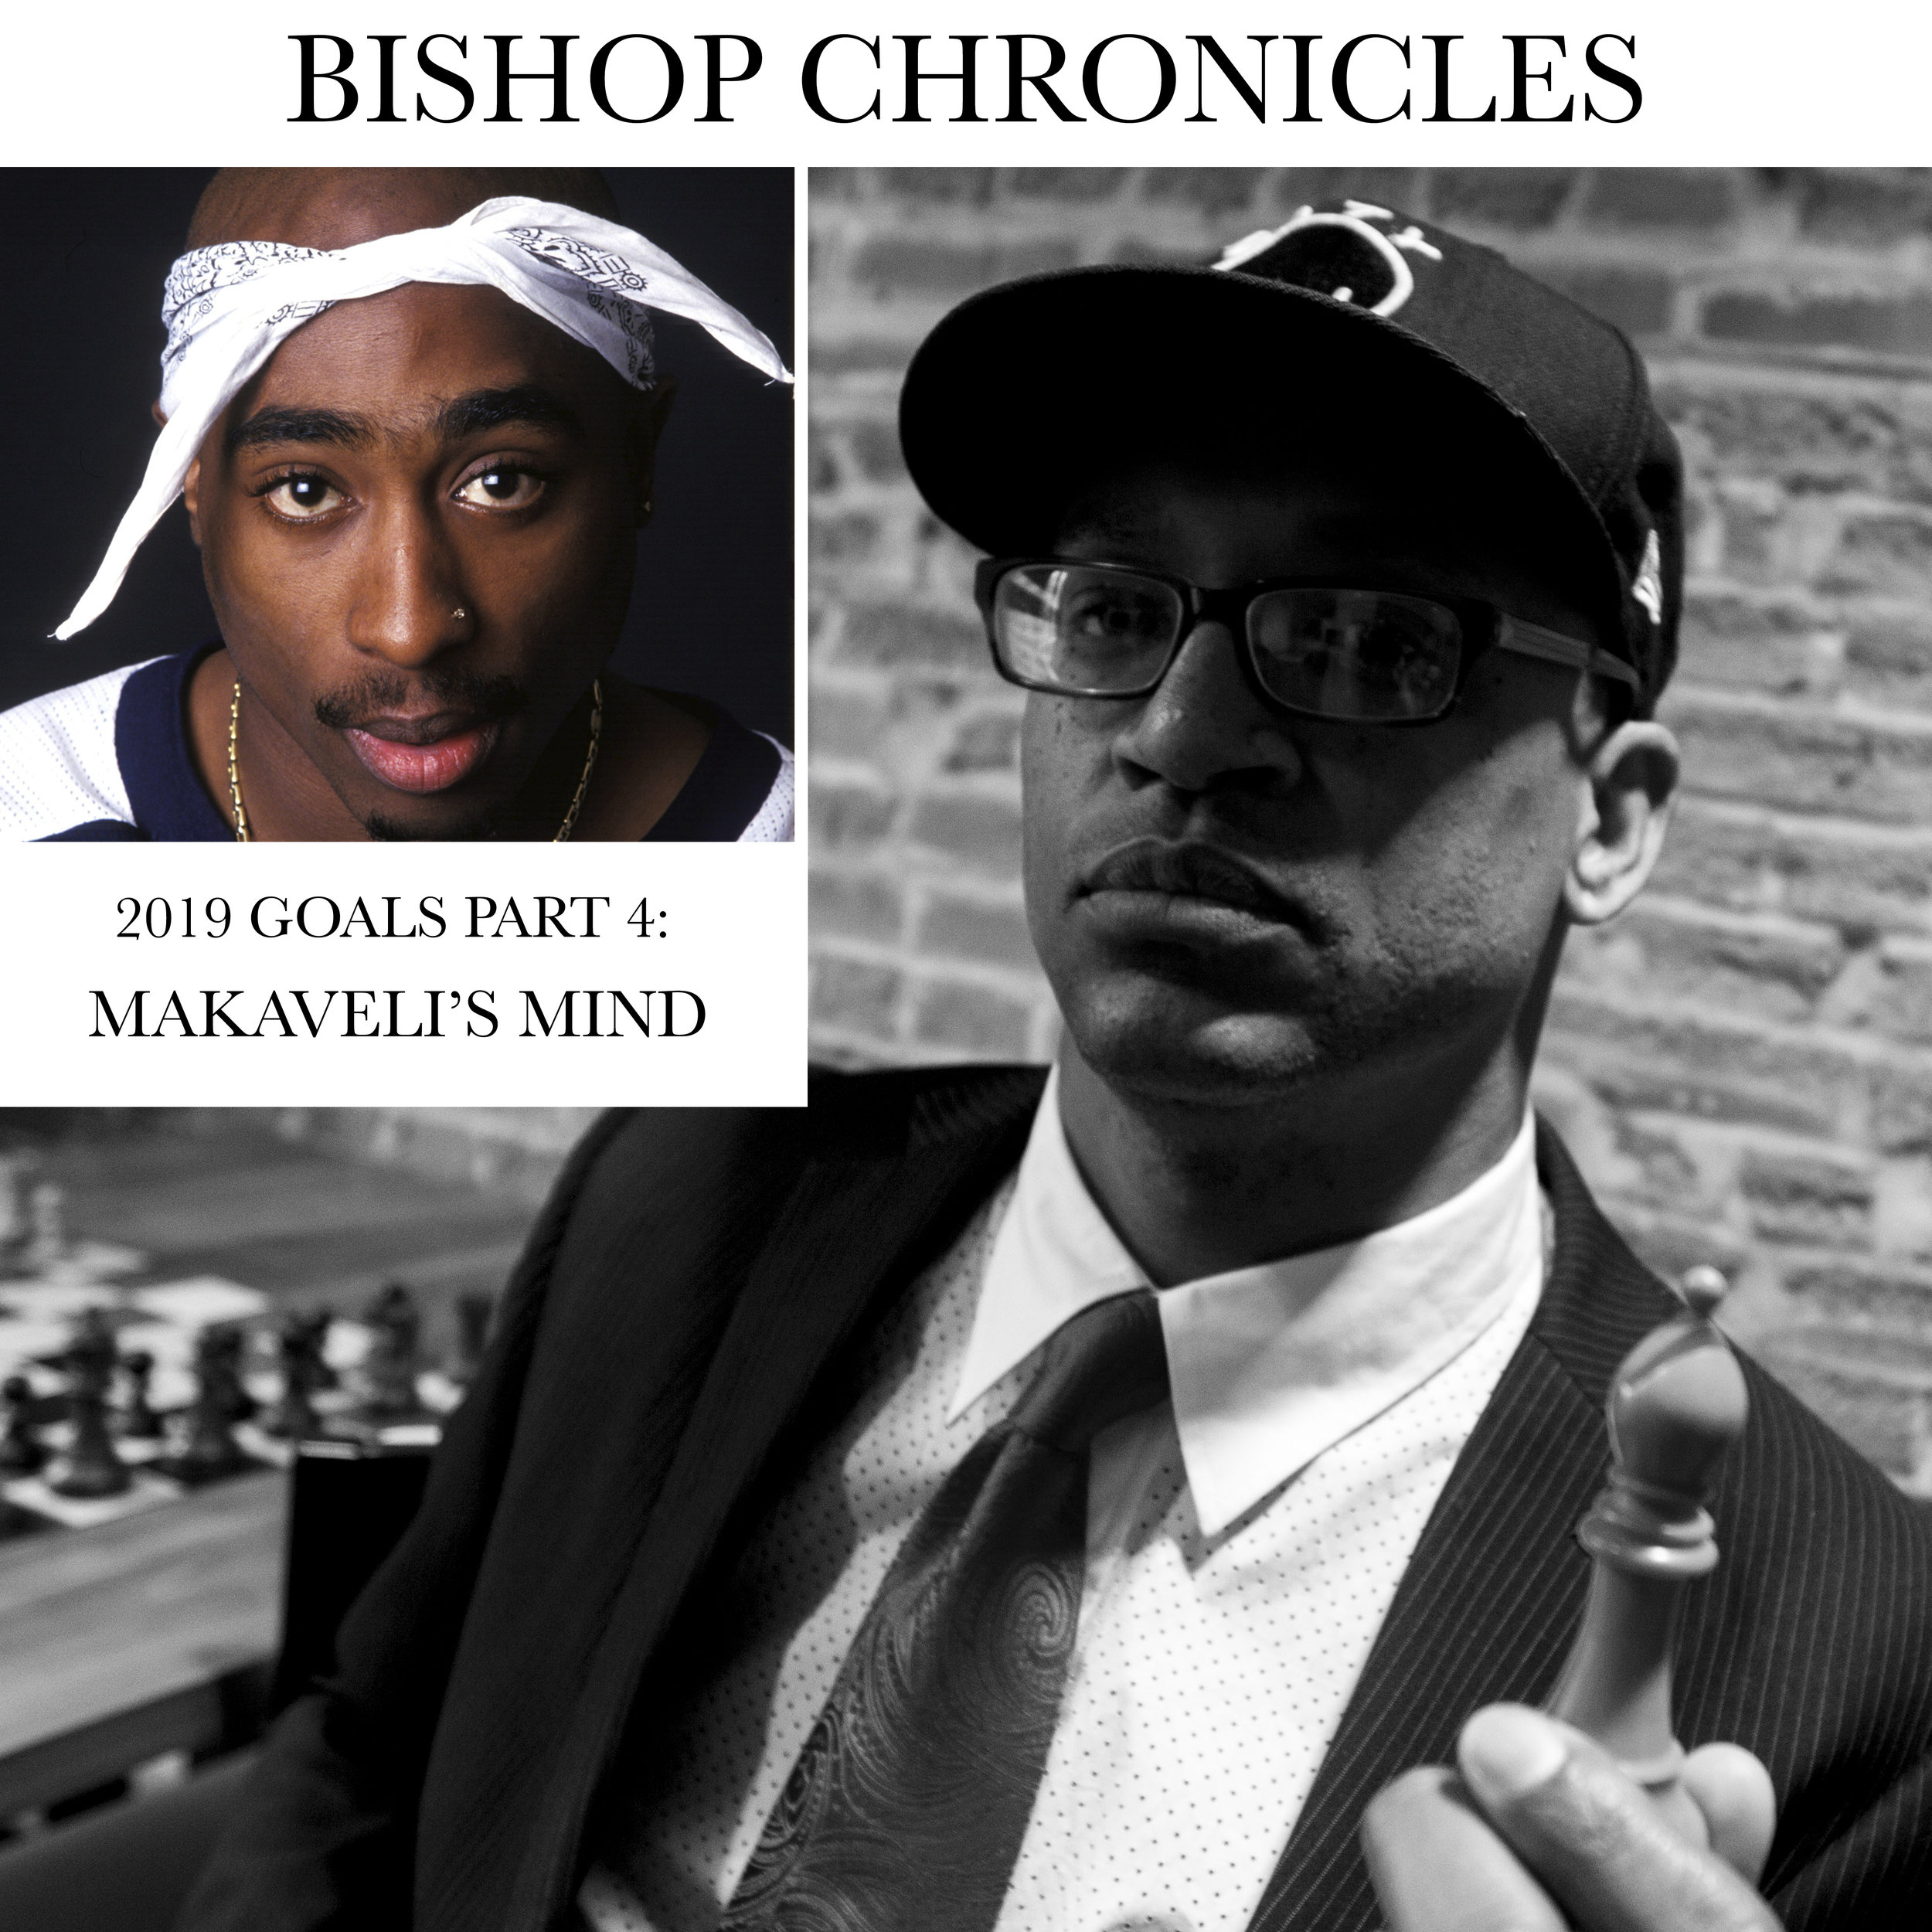 BISHOP CHRONICLES SHOW 59.jpg